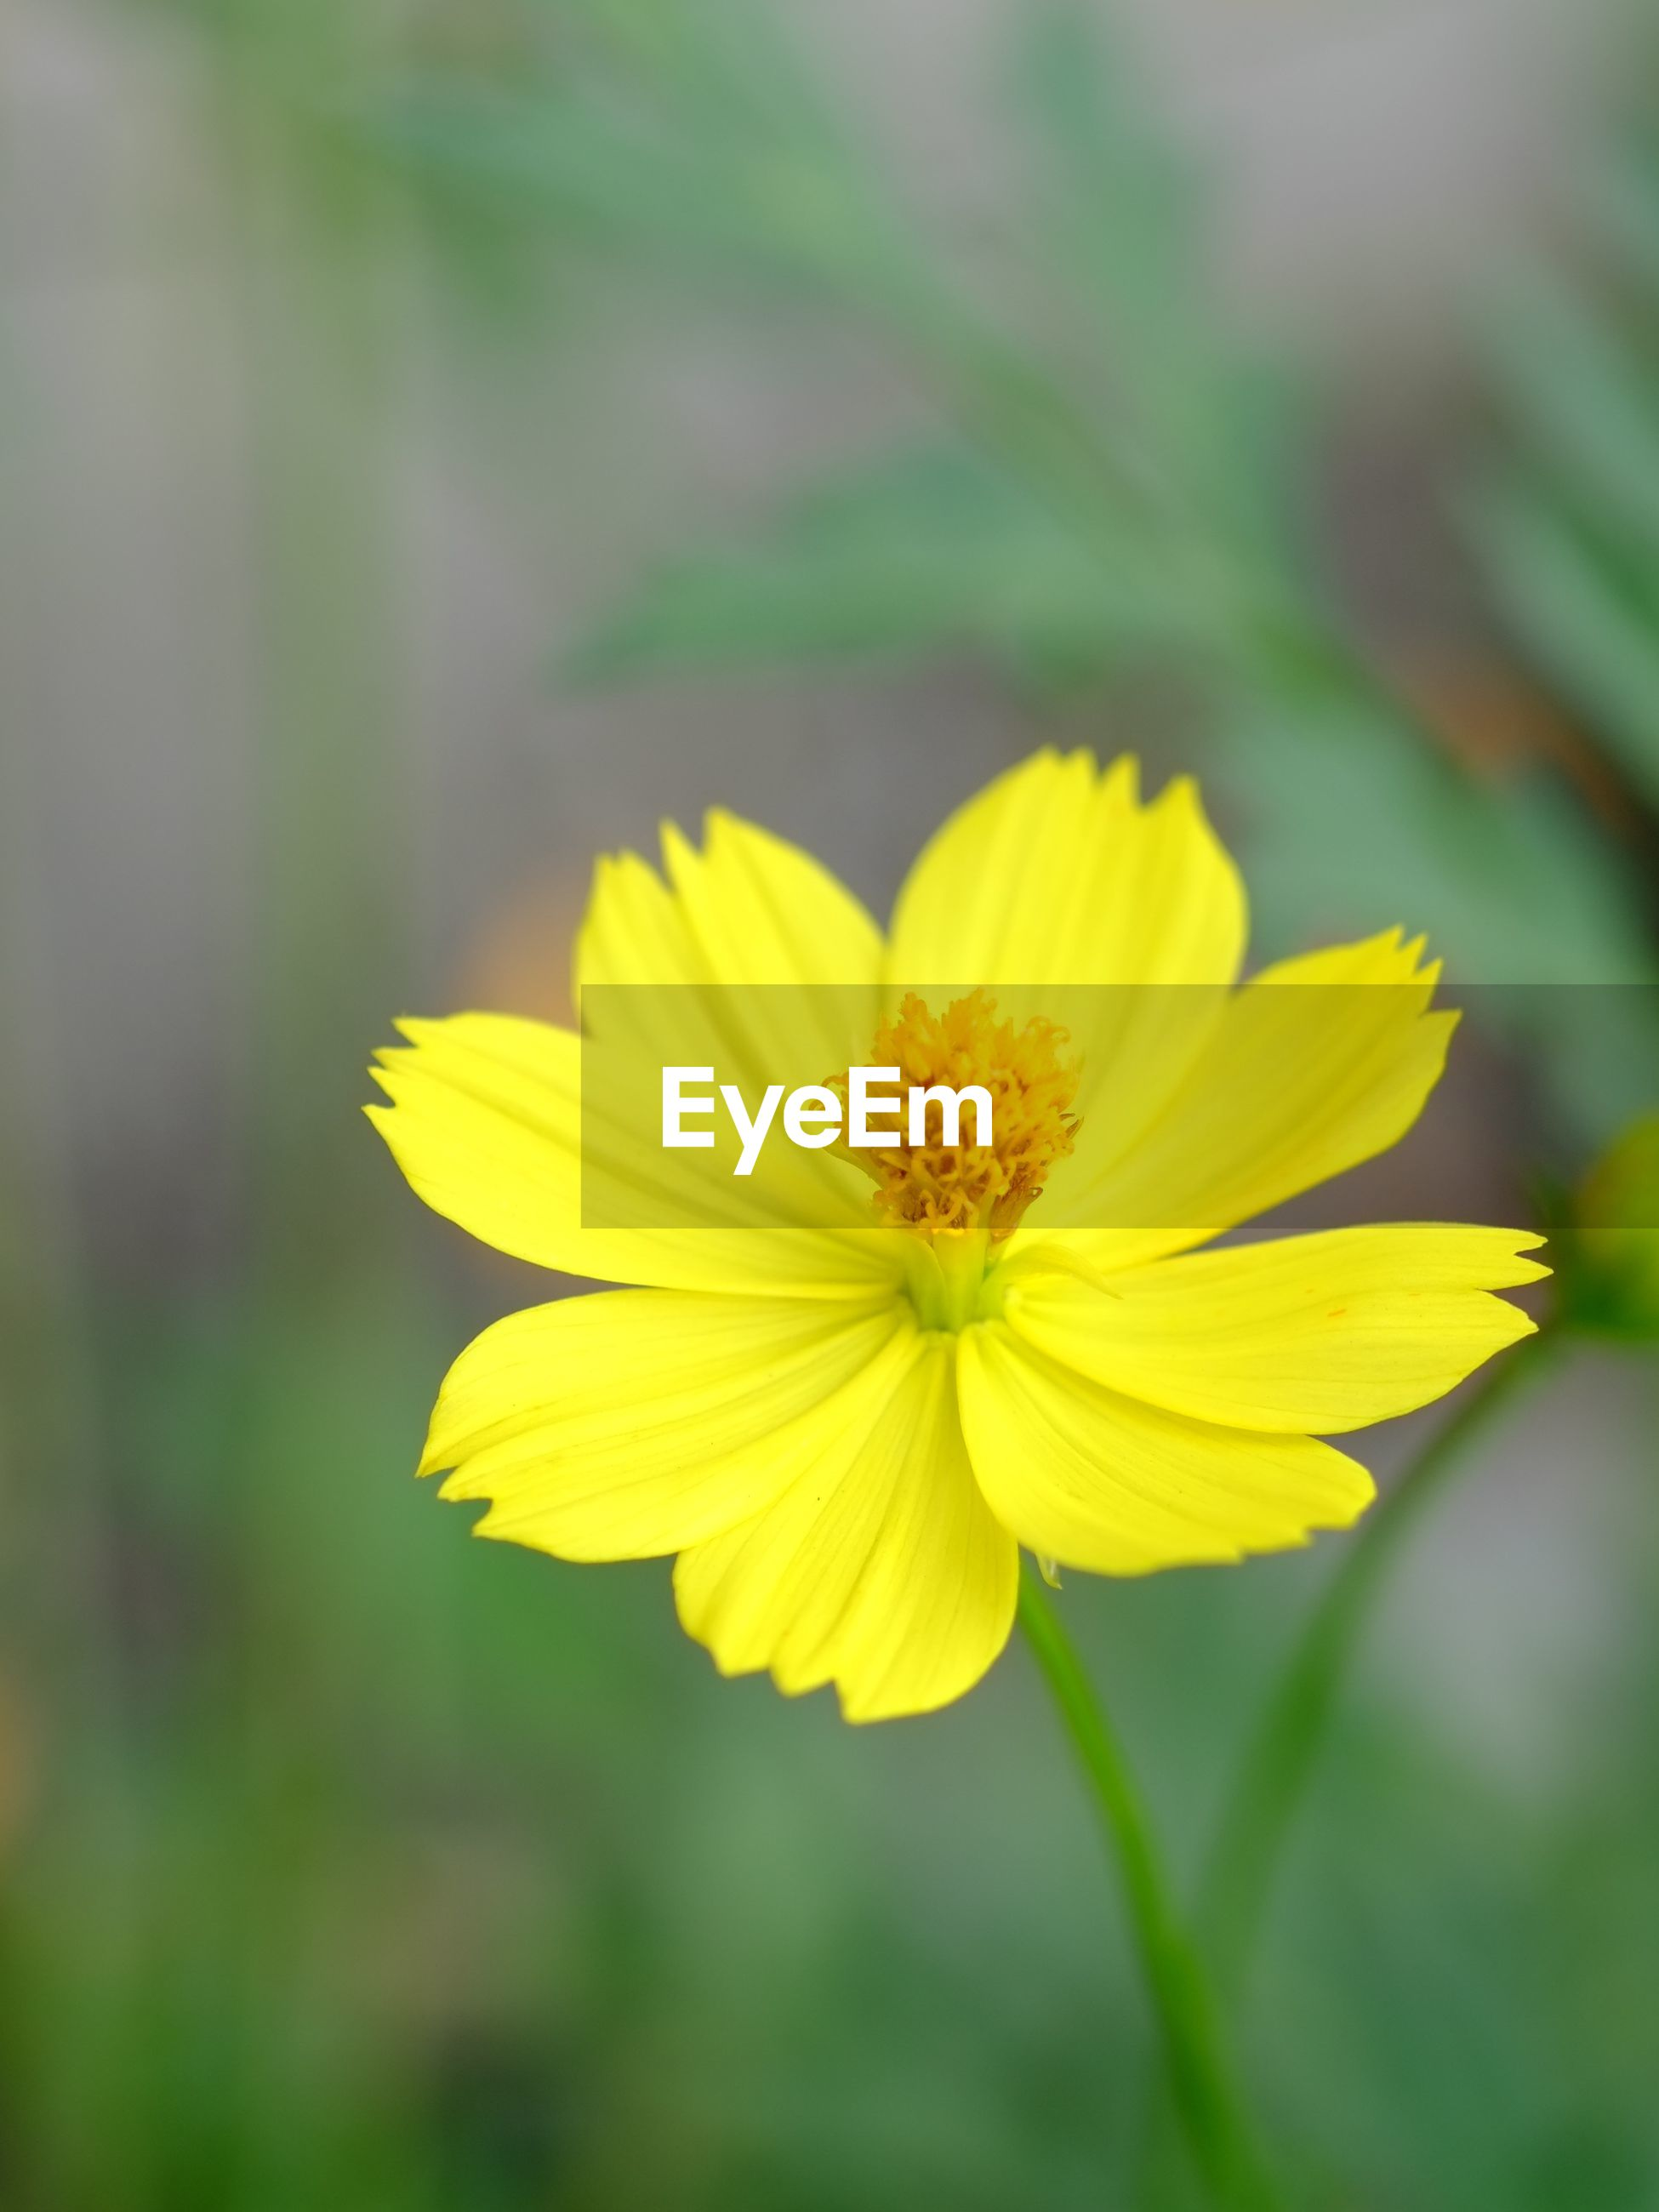 flower, petal, yellow, flower head, freshness, fragility, focus on foreground, close-up, beauty in nature, growth, single flower, pollen, blooming, nature, plant, in bloom, park - man made space, selective focus, day, outdoors